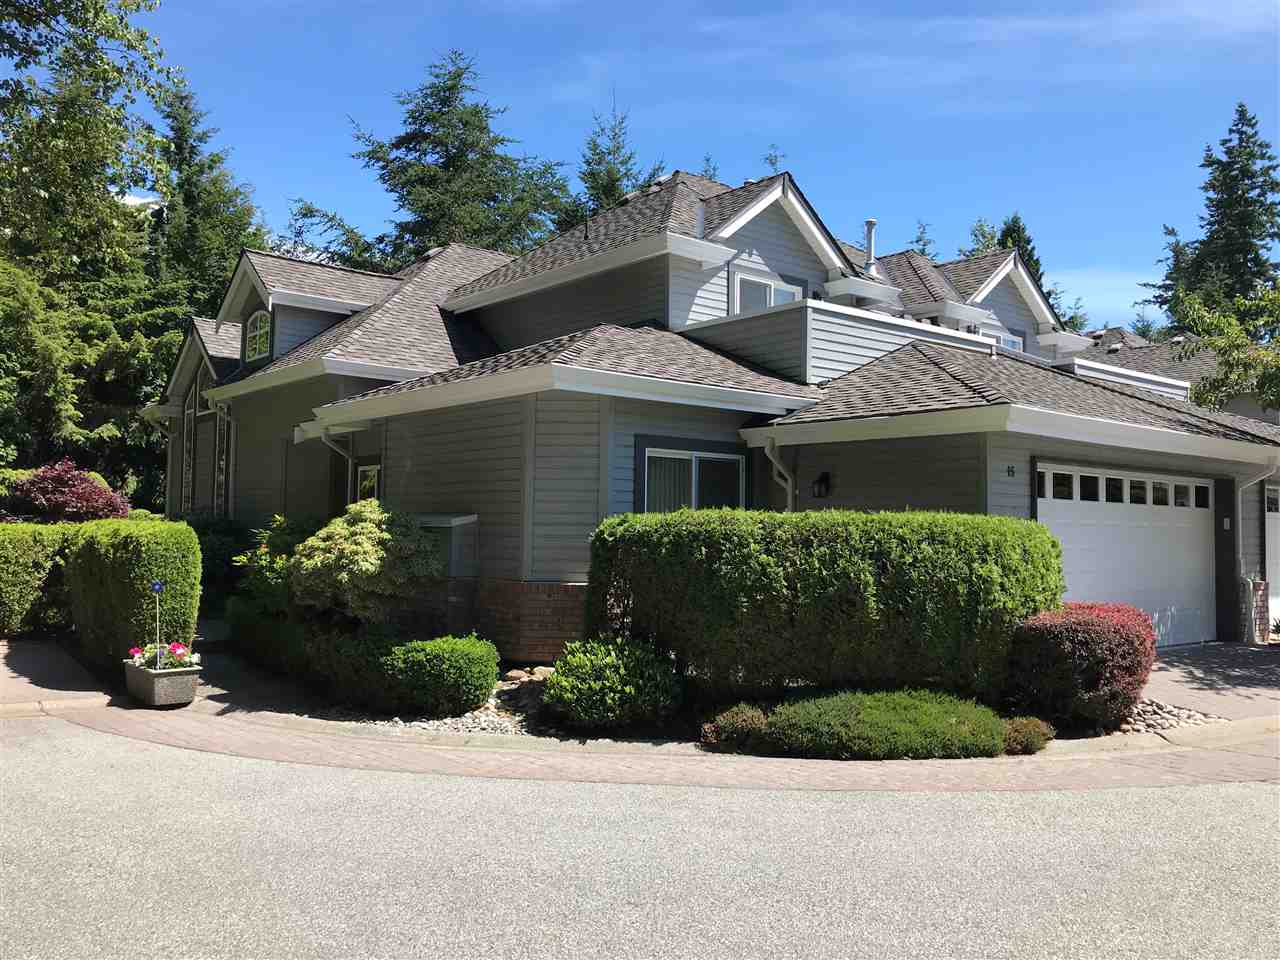 Removed: 15 - 2168 150a Street, Surrey, BC - Removed on 2019-07-13 06:12:10